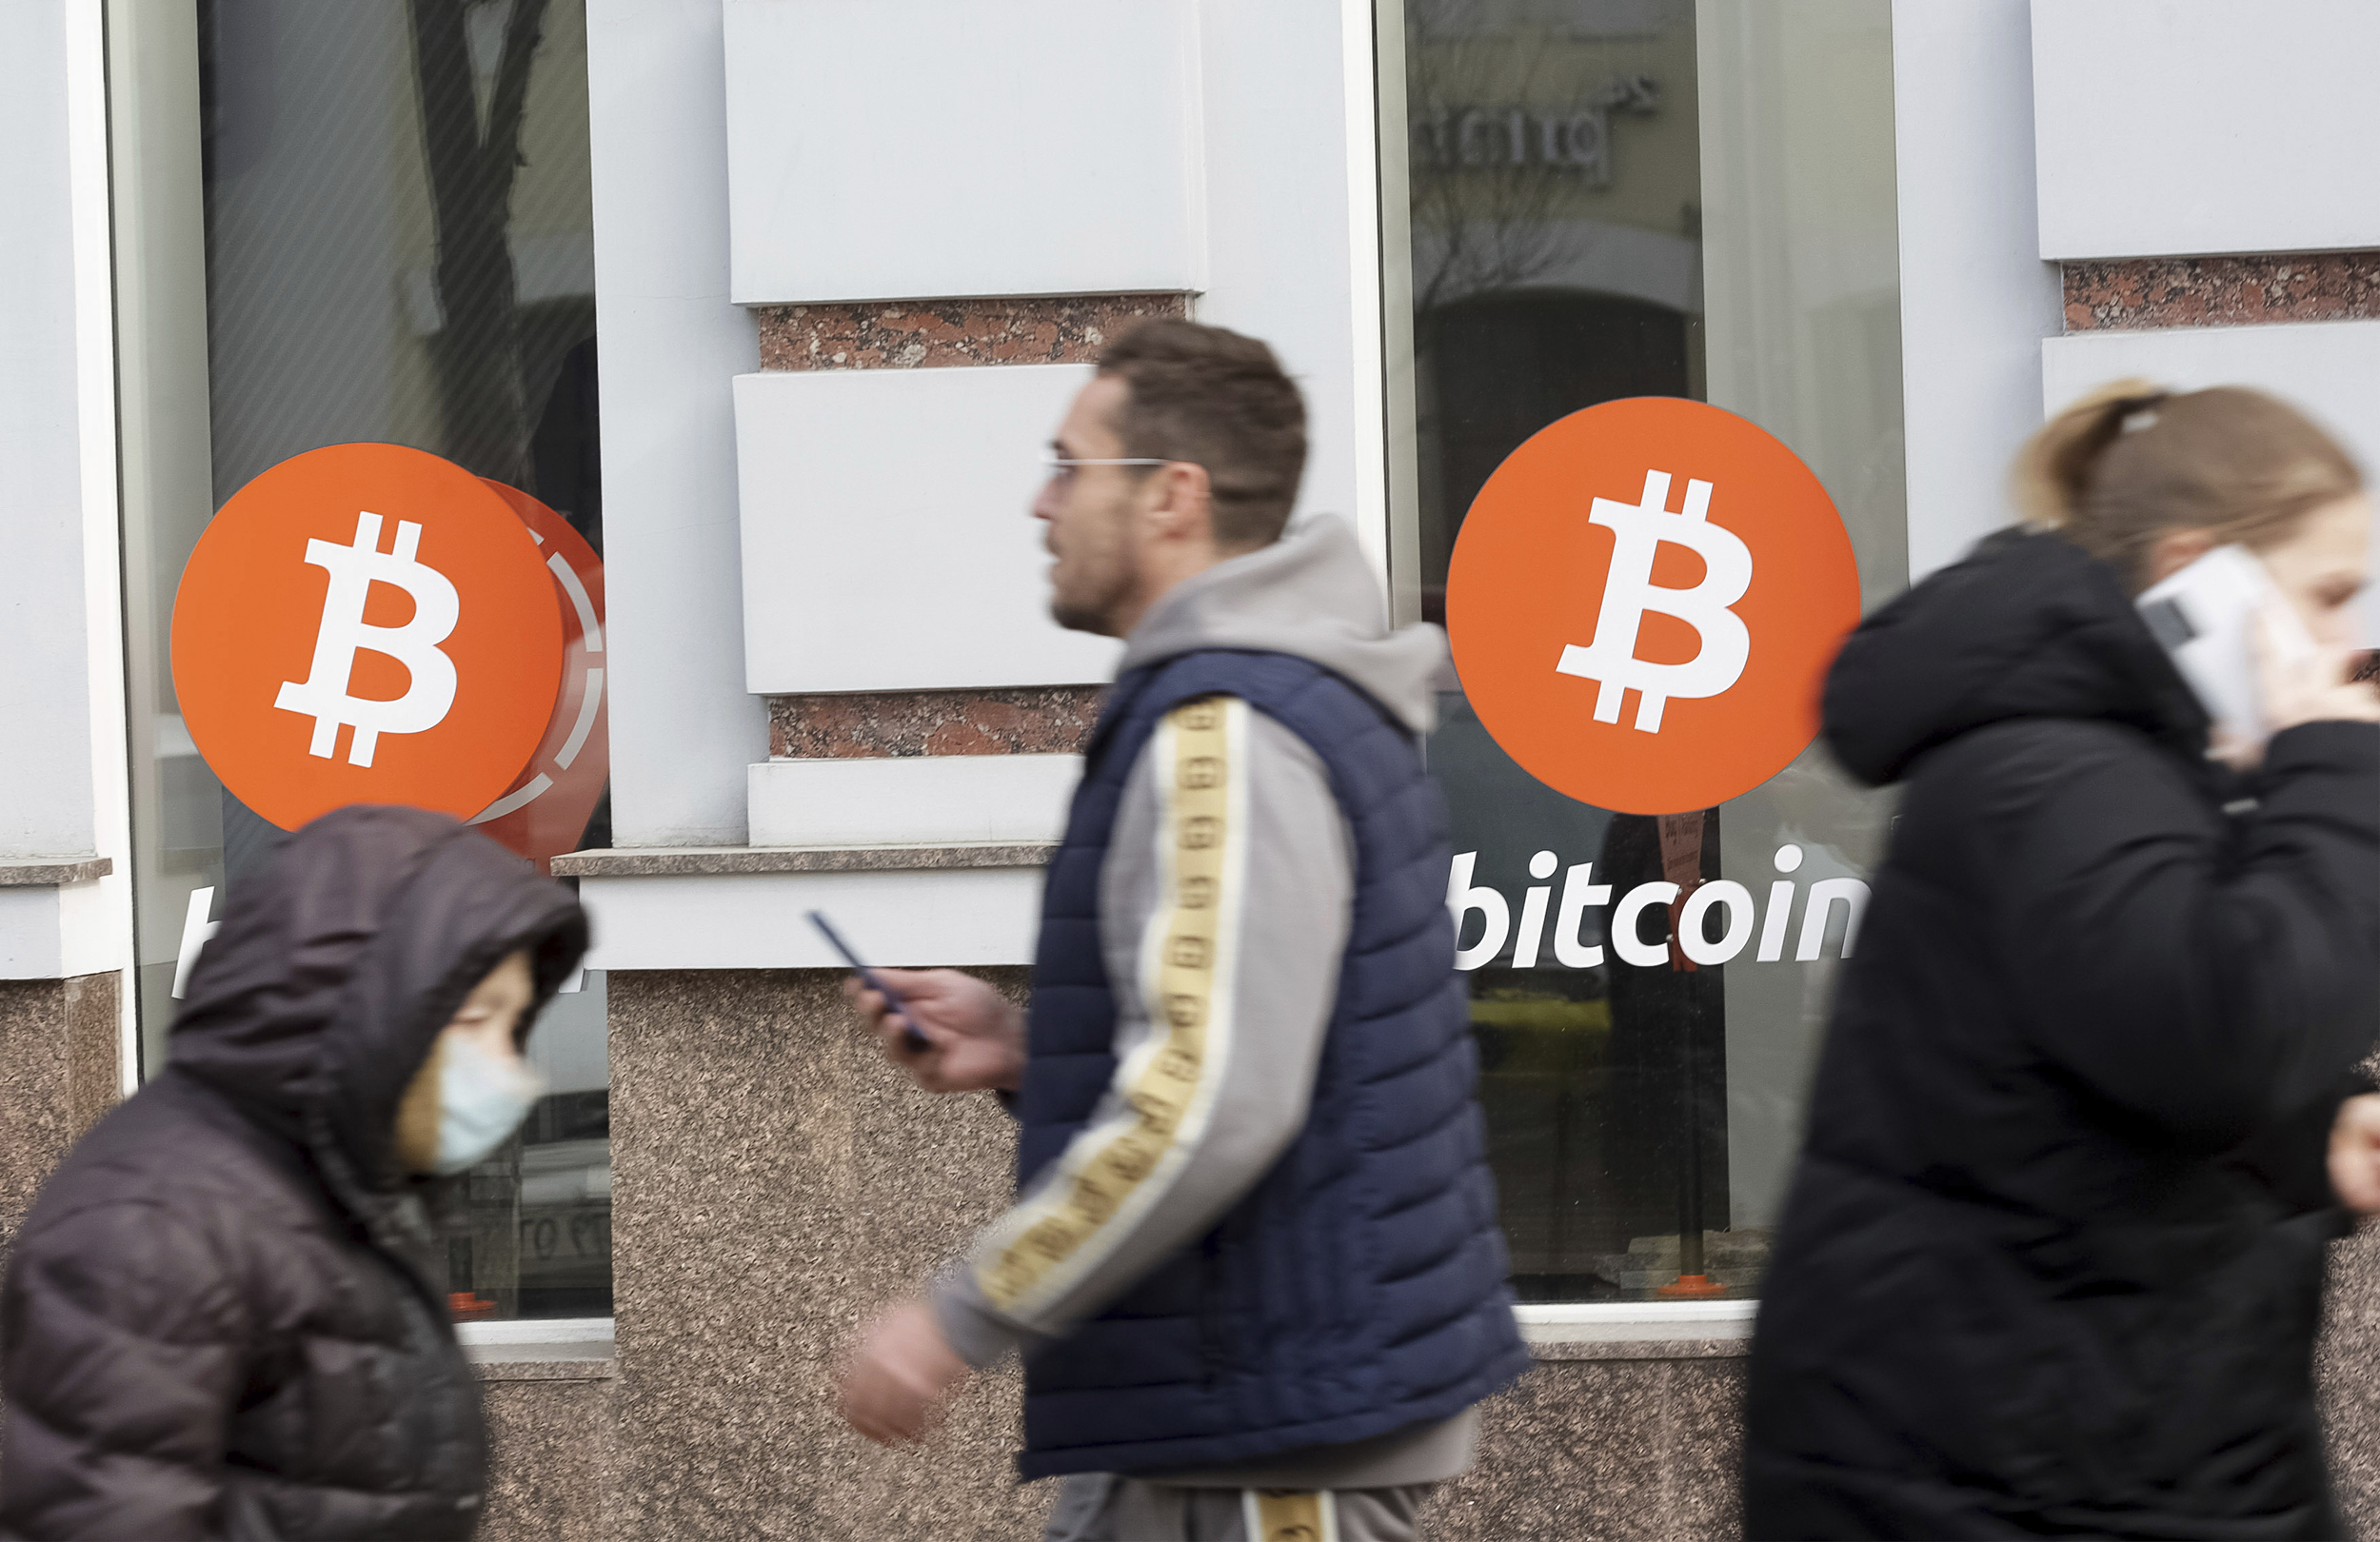 Ukraine is the latest country to legalize bitcoin, as the cryptocurrency slowly goes global